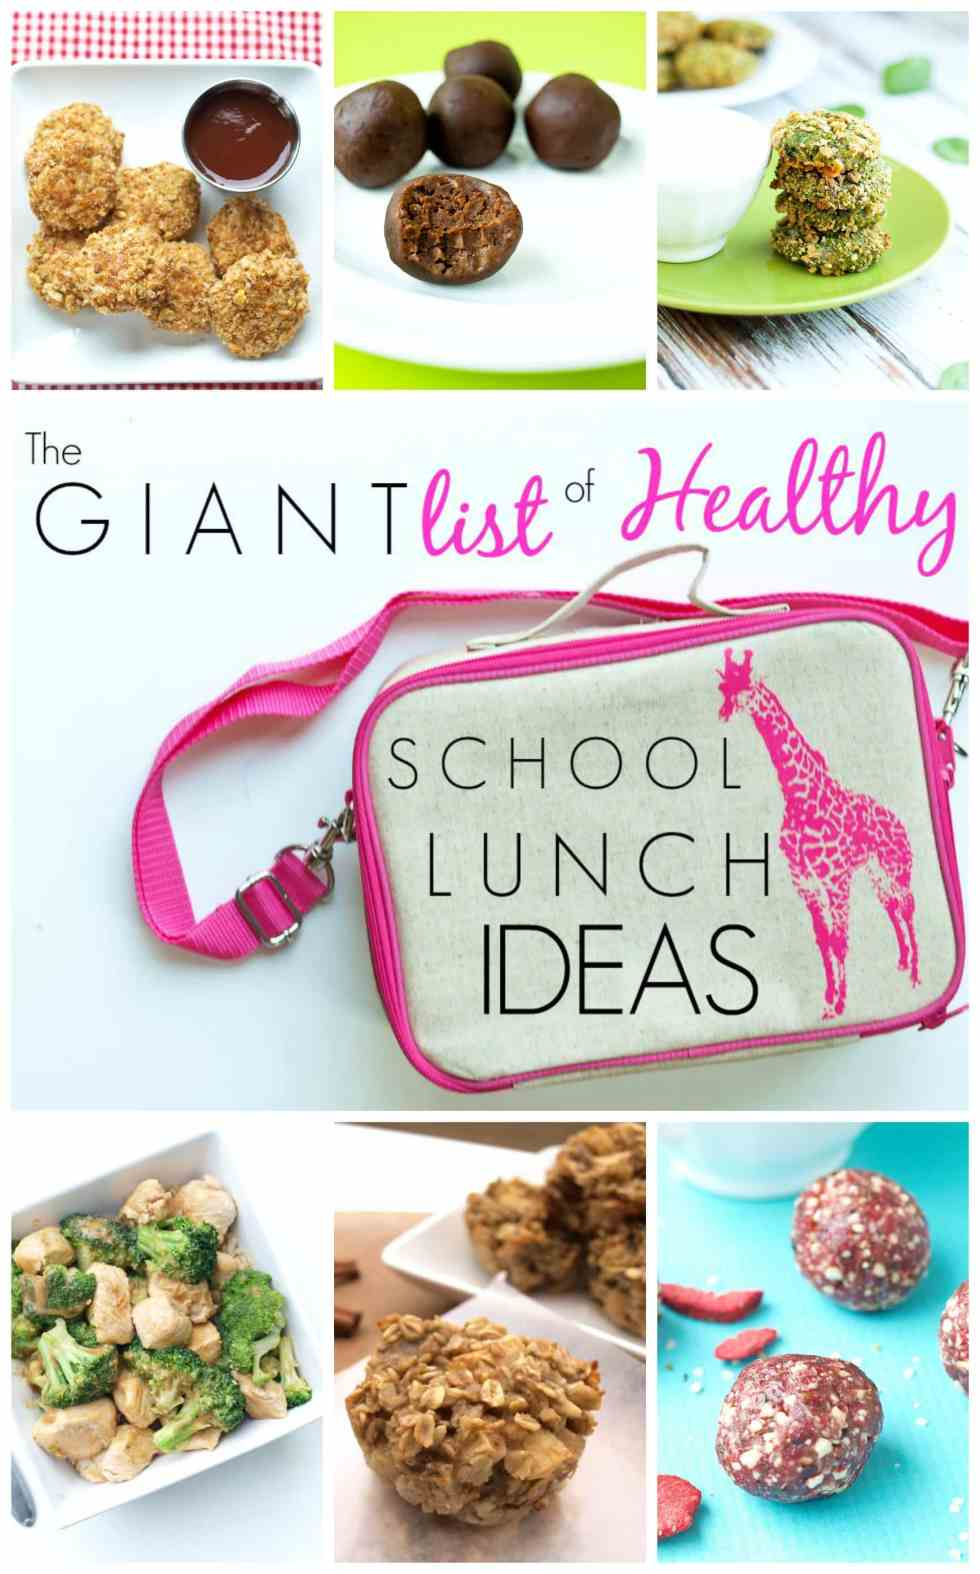 The Giant List of Healthy School Lunch Ideas. Get ideas and inspiration for packing real food, healthy, clean-eating lunches!